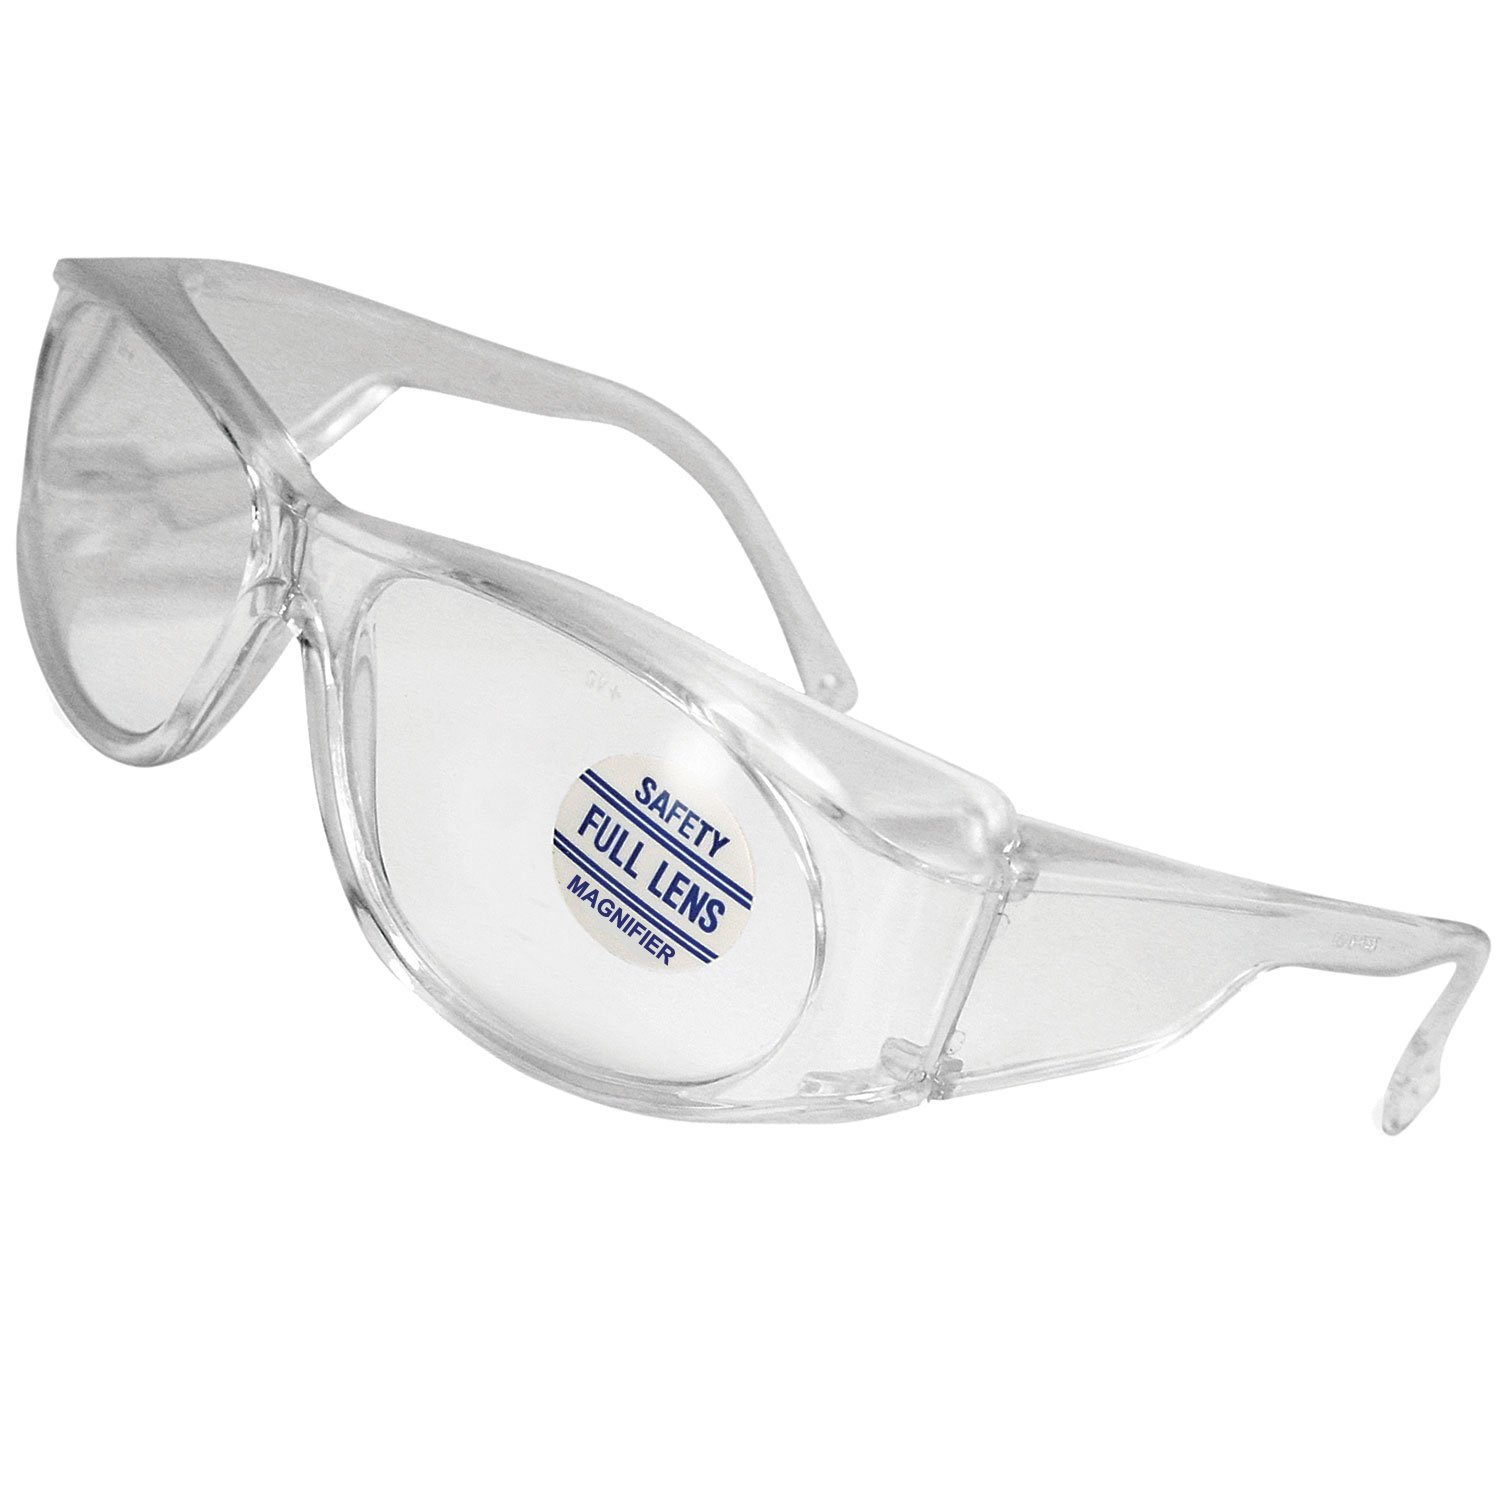 Mag-safe Maginfying Safety Glasses